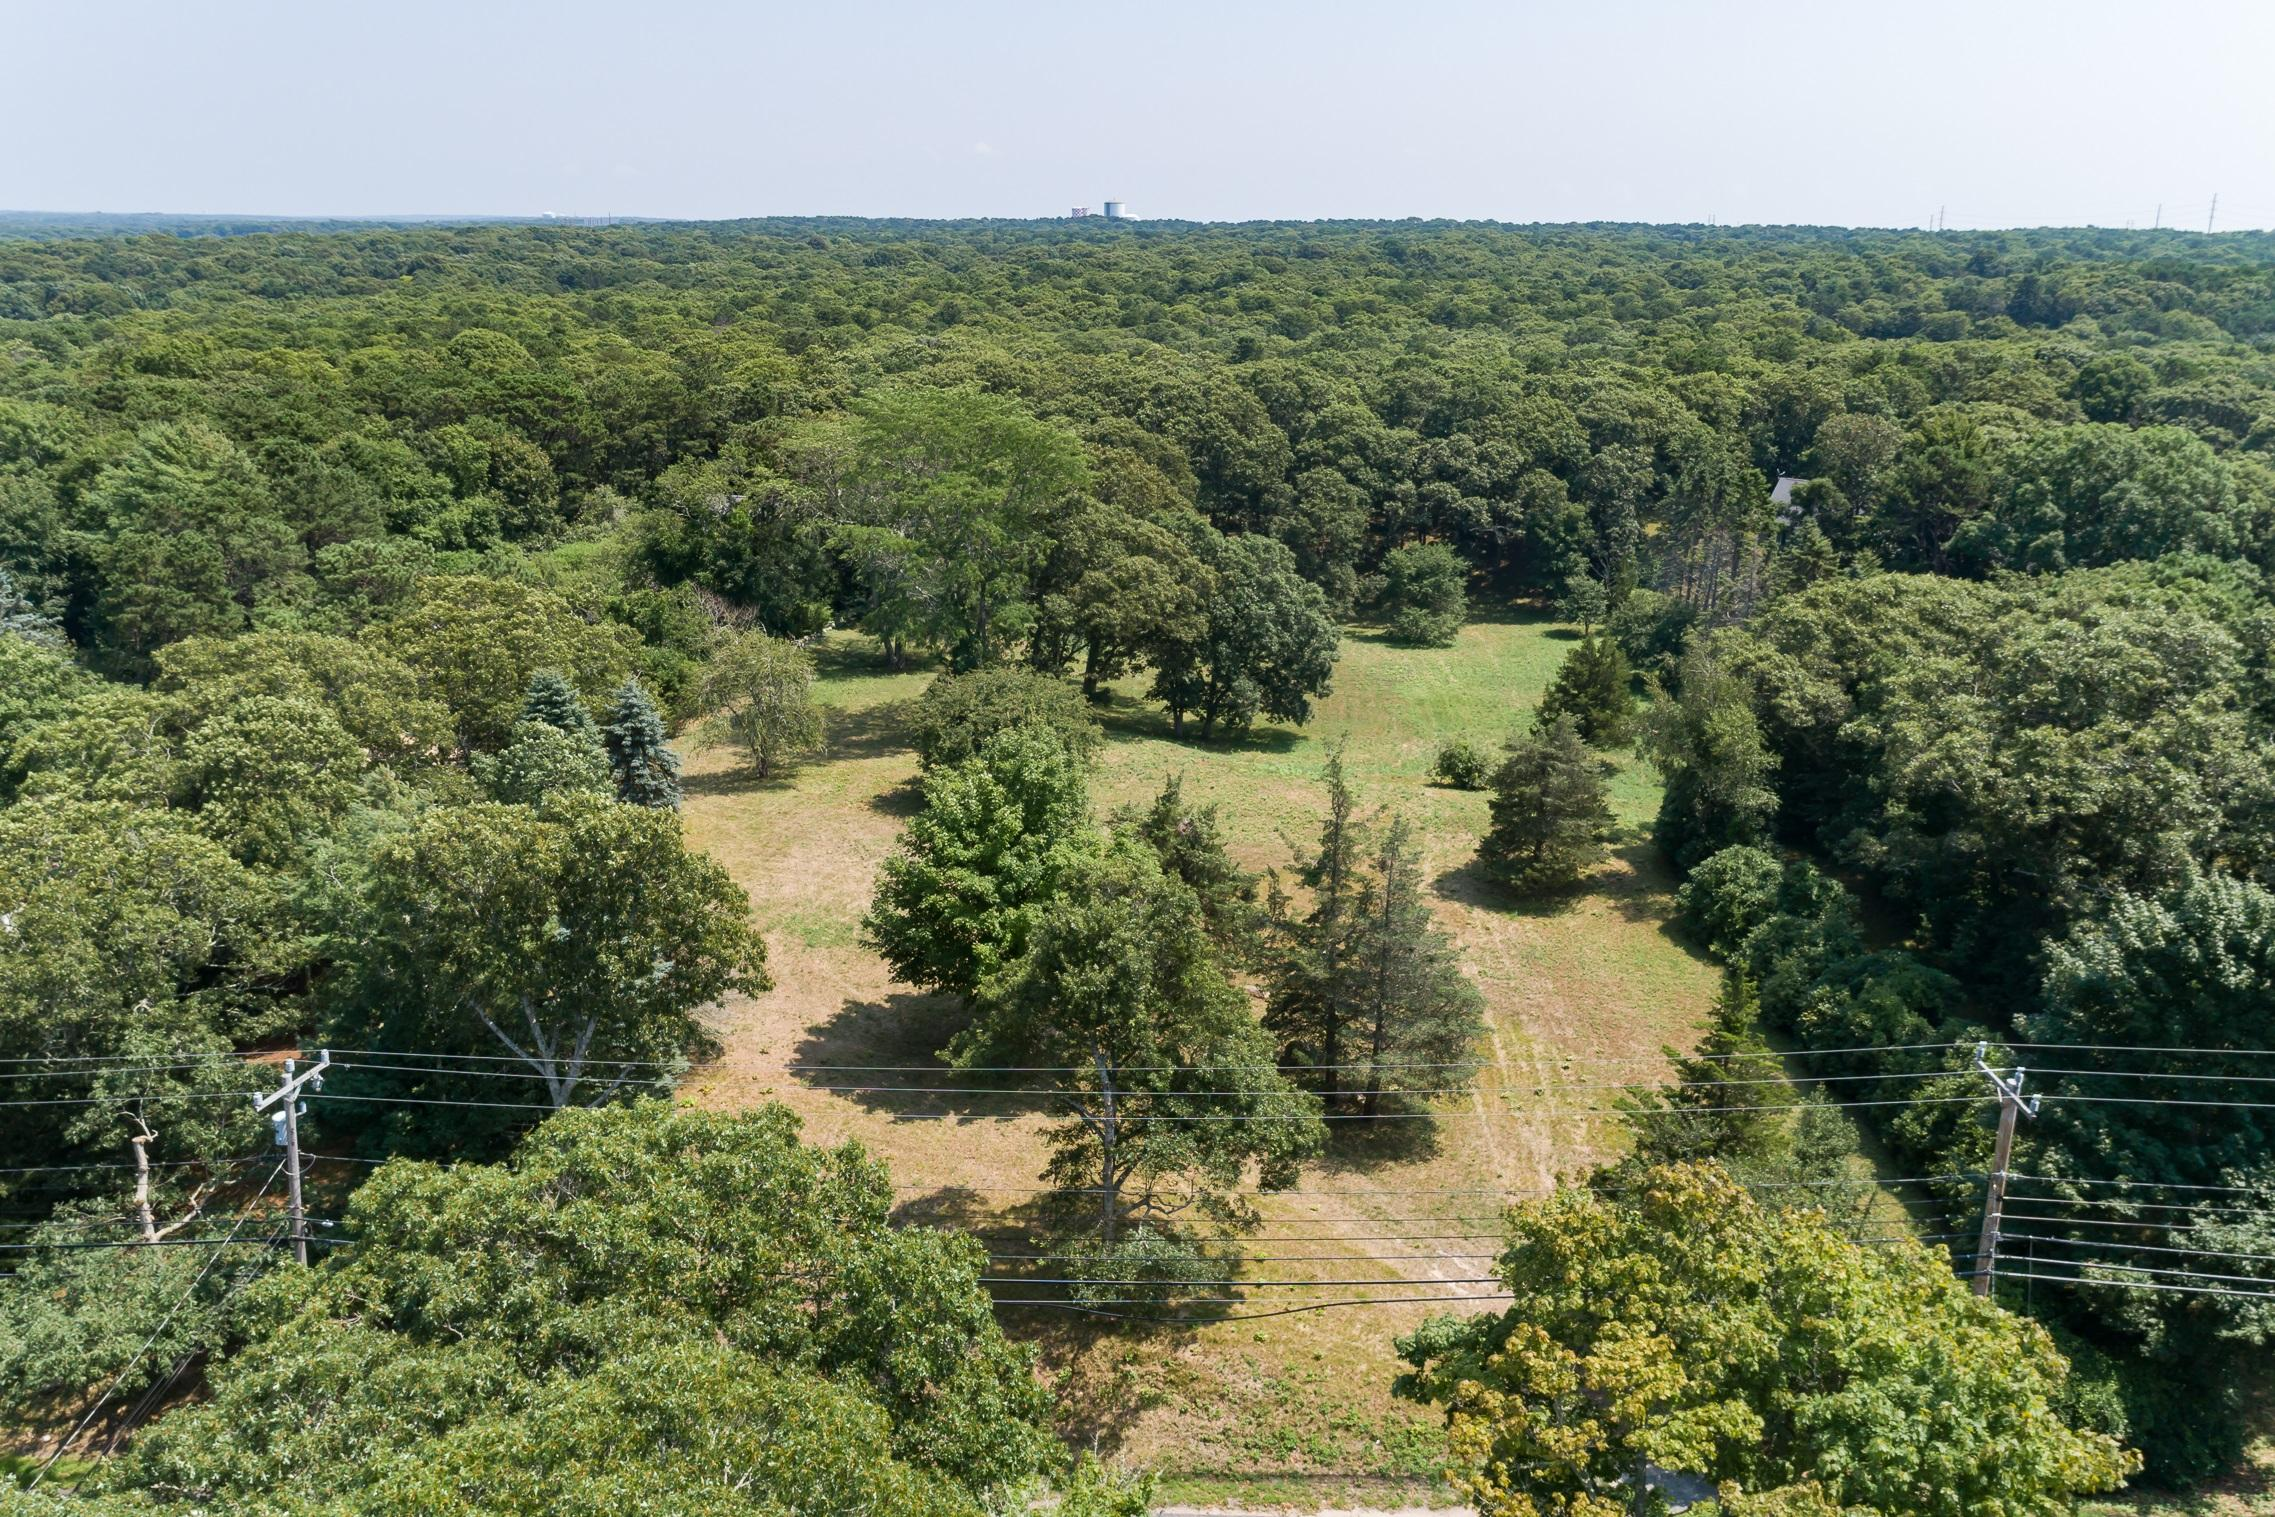 1536 HYANNIS ROAD, BARNSTABLE, MA 02630